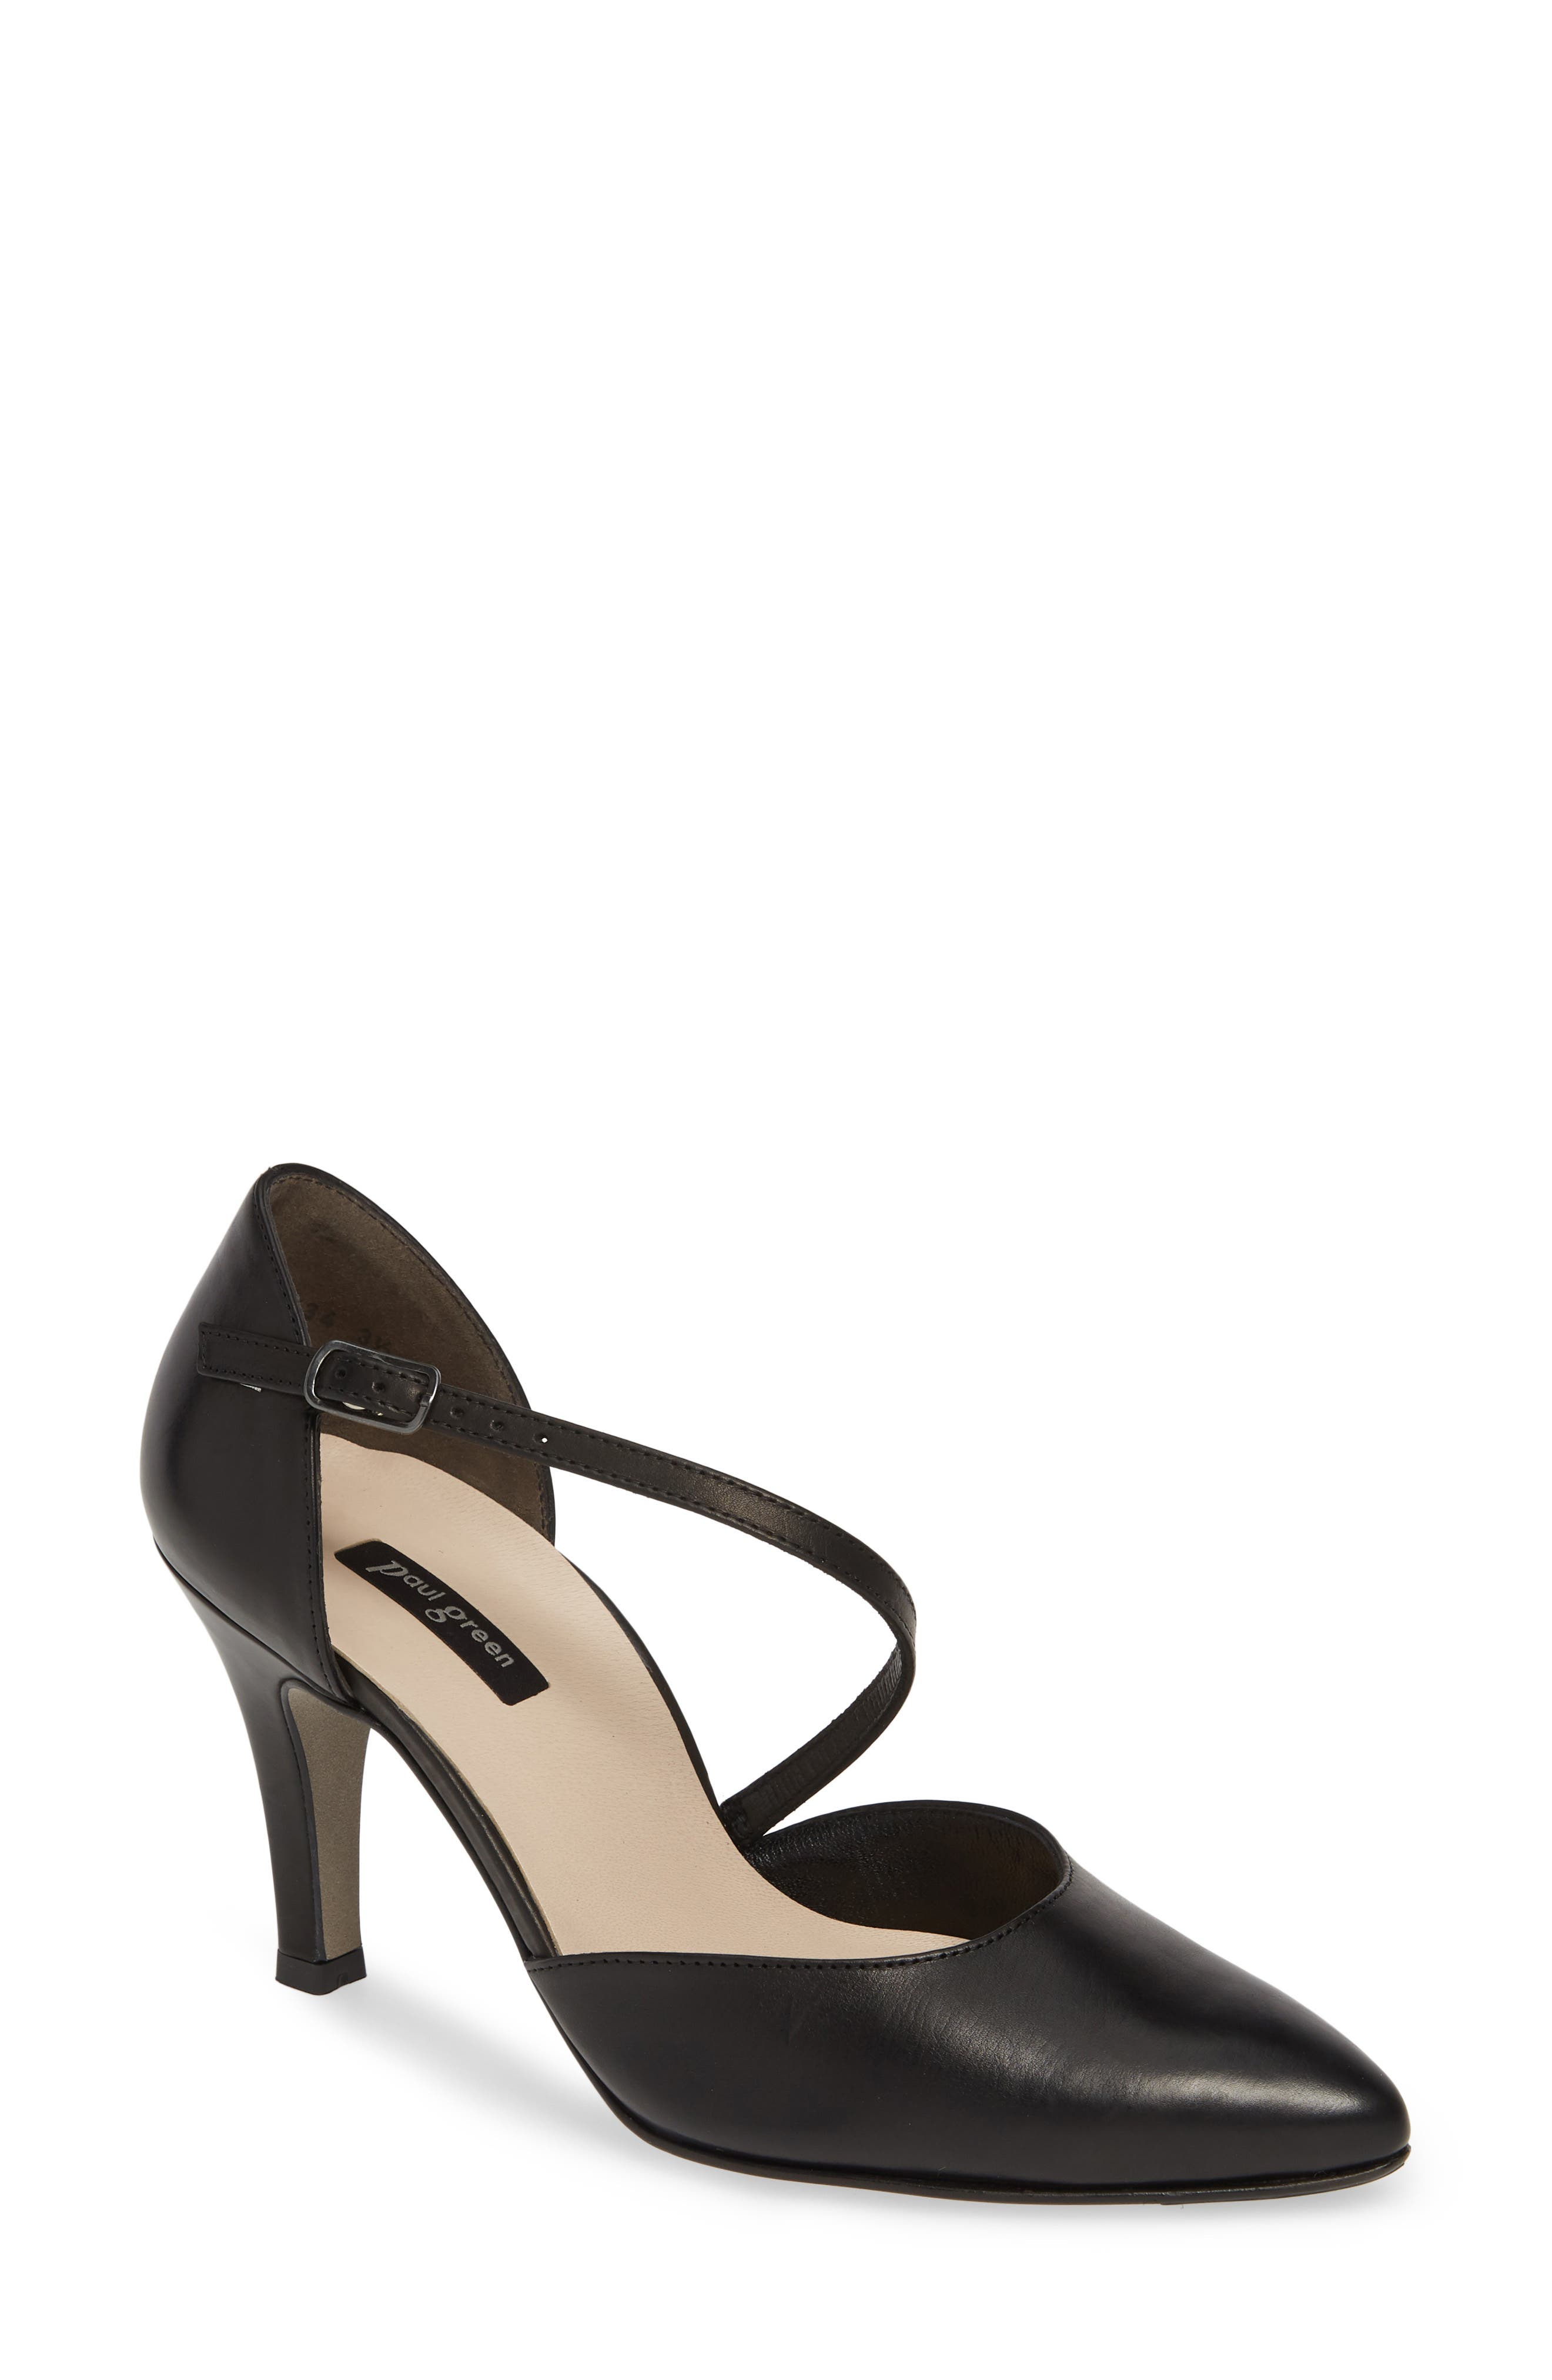 PAUL GREEN Valetta Pointy Toe Pump, Main, color, BLACK LEATHER